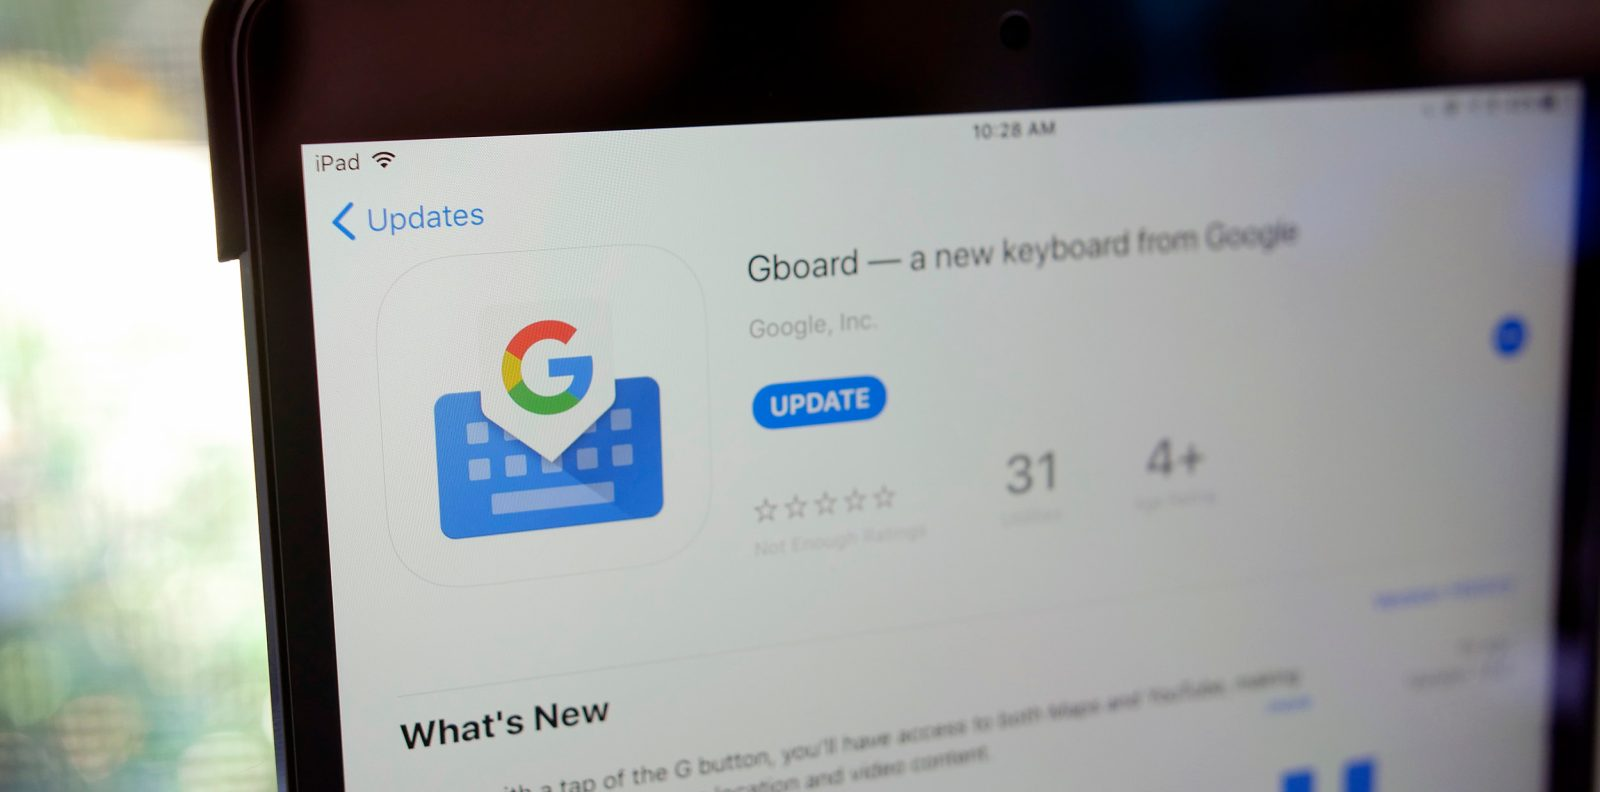 Gboard for iOS now supports Google Maps, YouTube, and drawing